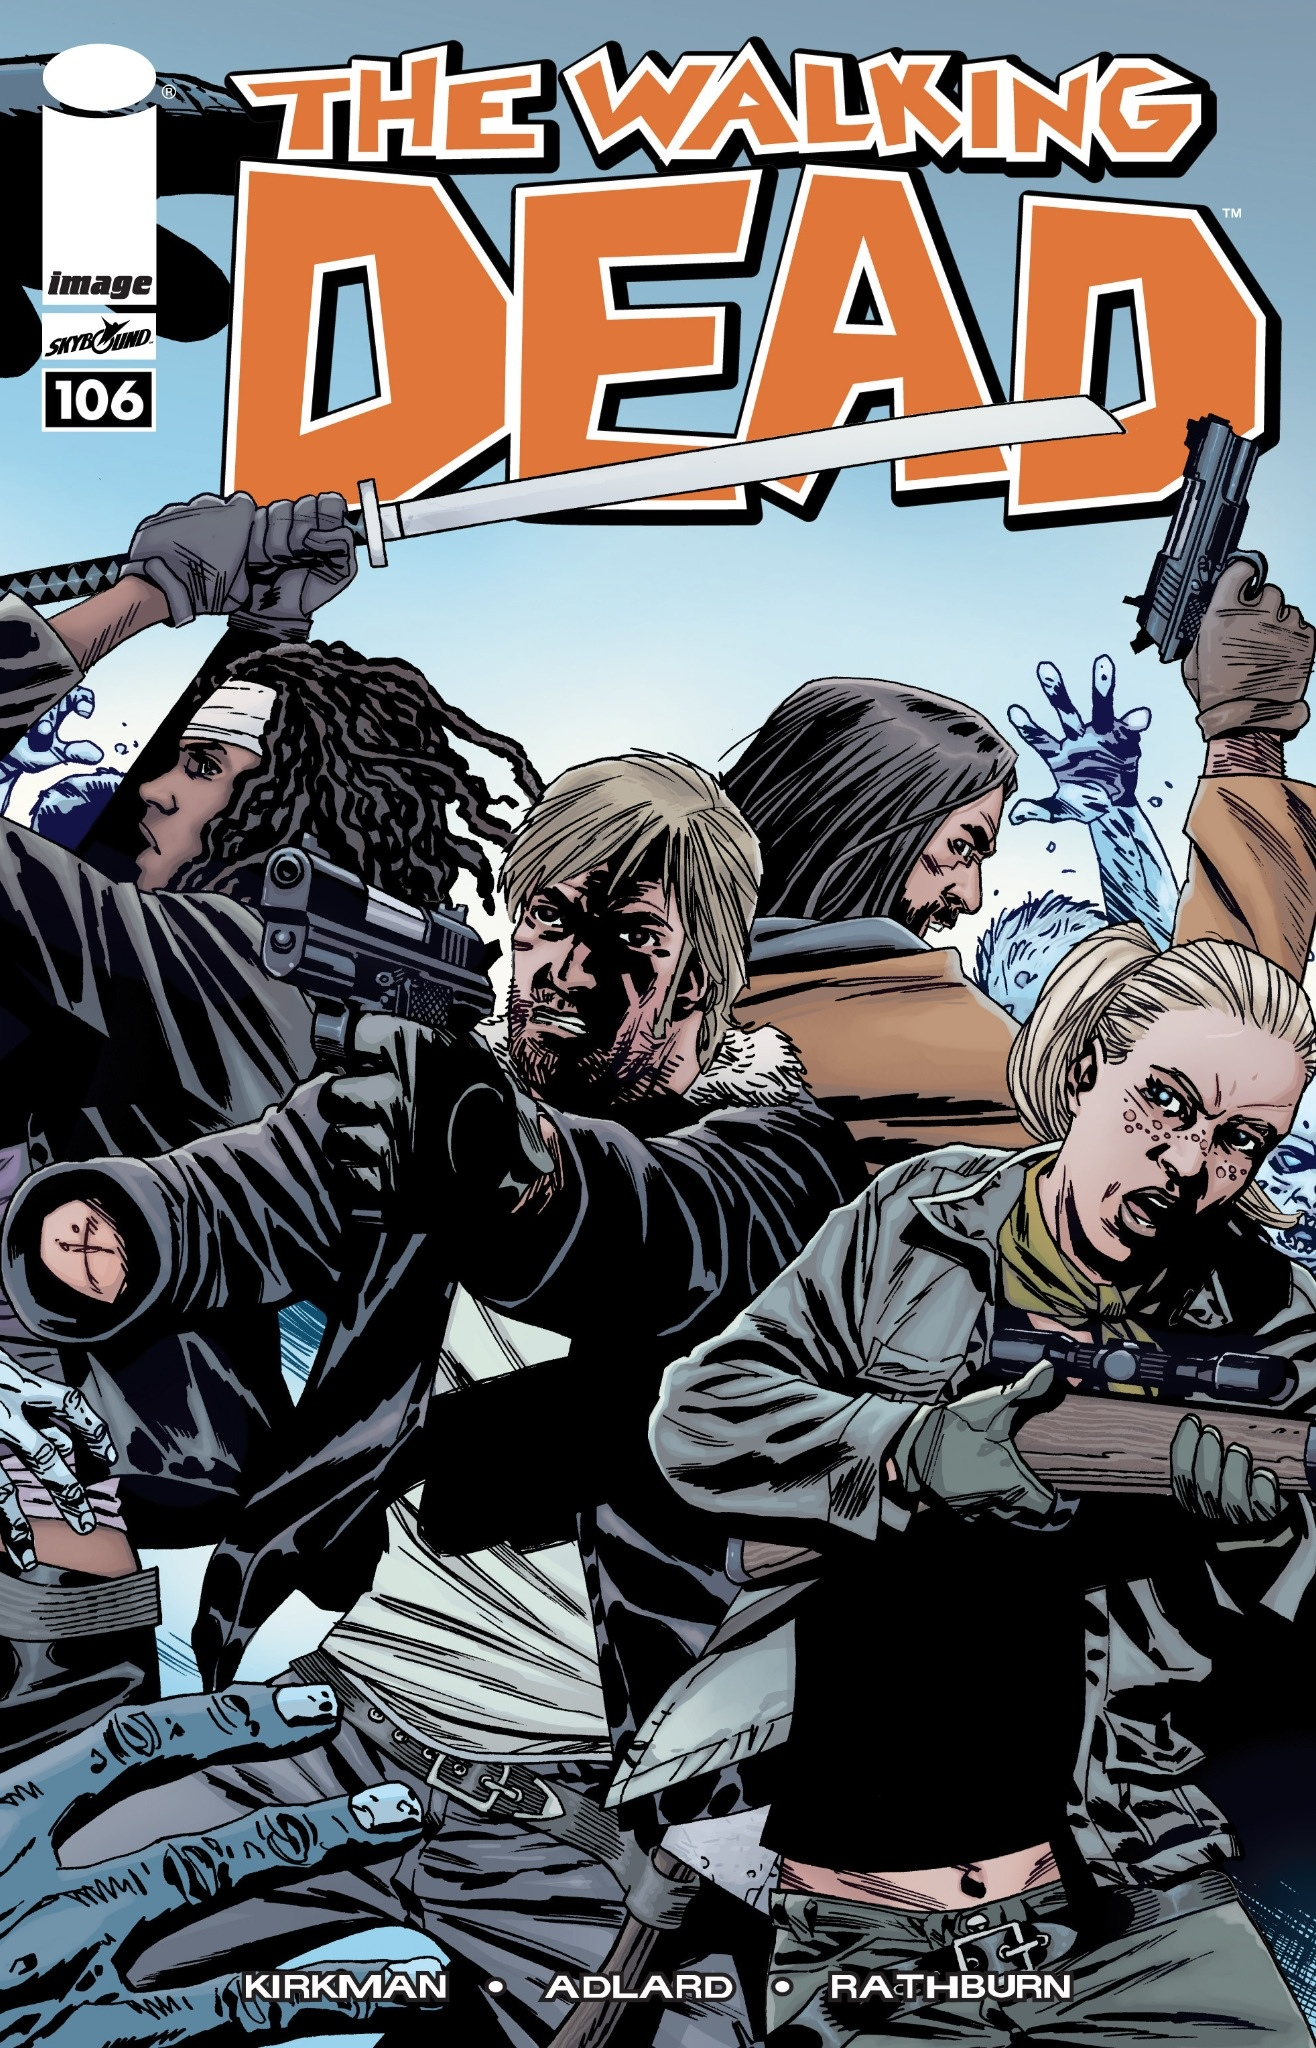 The Walking Dead Comic Art - Gallery | eBaum's World